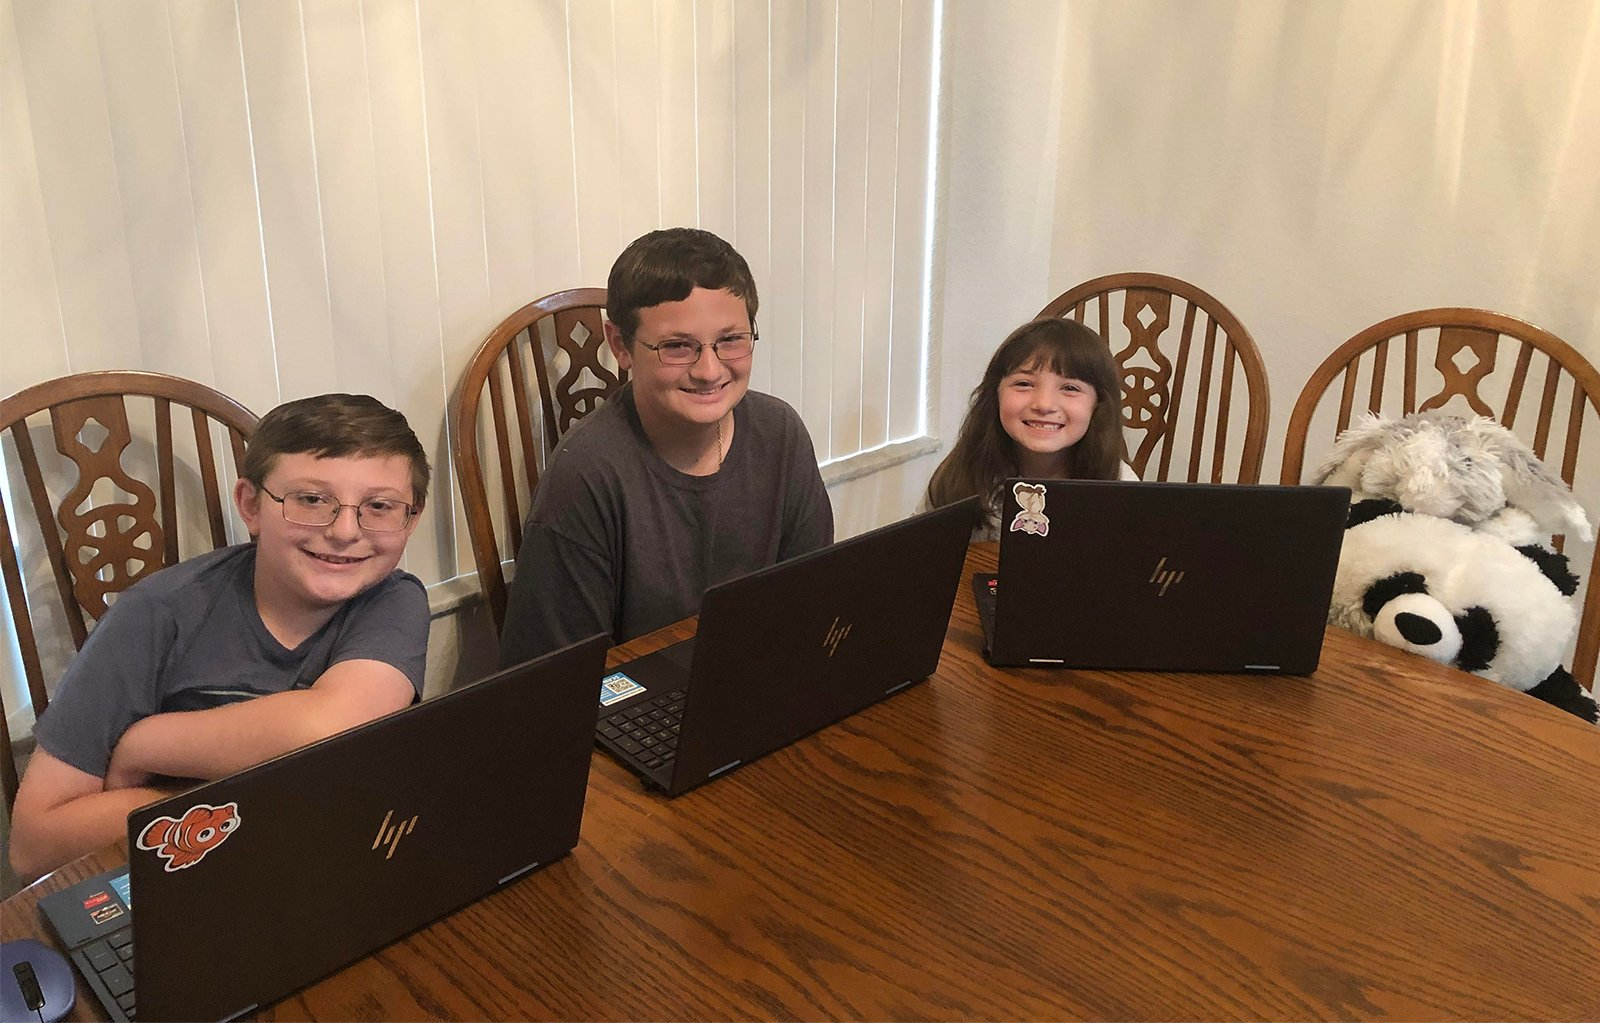 The Digiuseppi siblings Charlie, 11, from left, Anthony 14, and Abagail, 8; attend school virtually from their home in Fort Pierce, Florida. Photo courtesy of Lola Digiuseppi